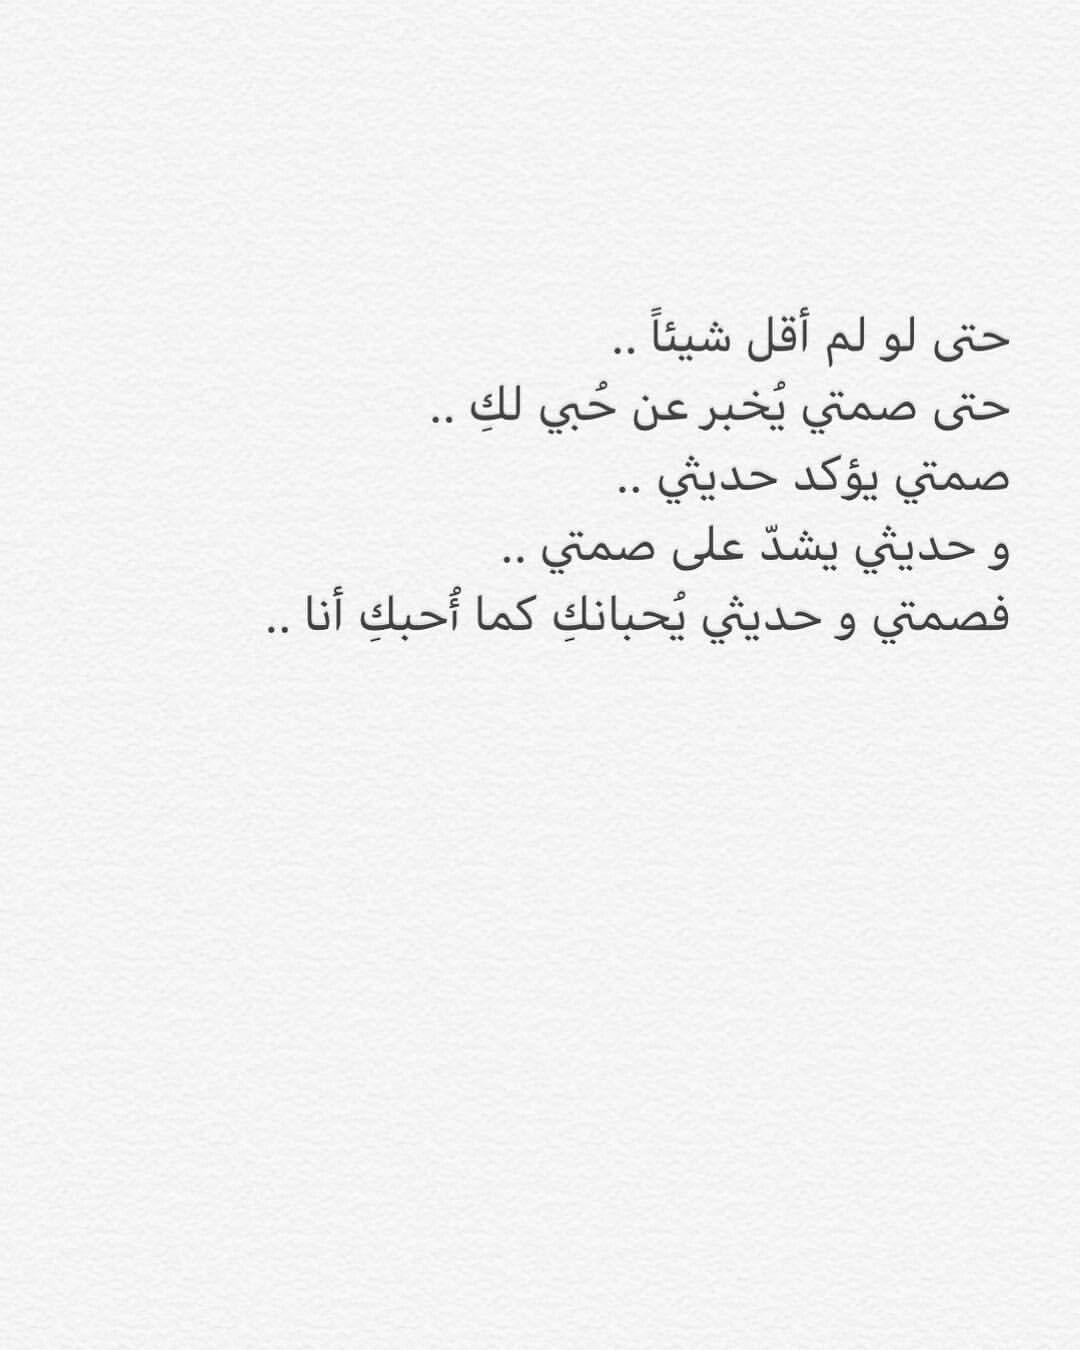 Pin By Bade Mamo On Special Mood Quotes Arabic Love Quotes Words Quotes